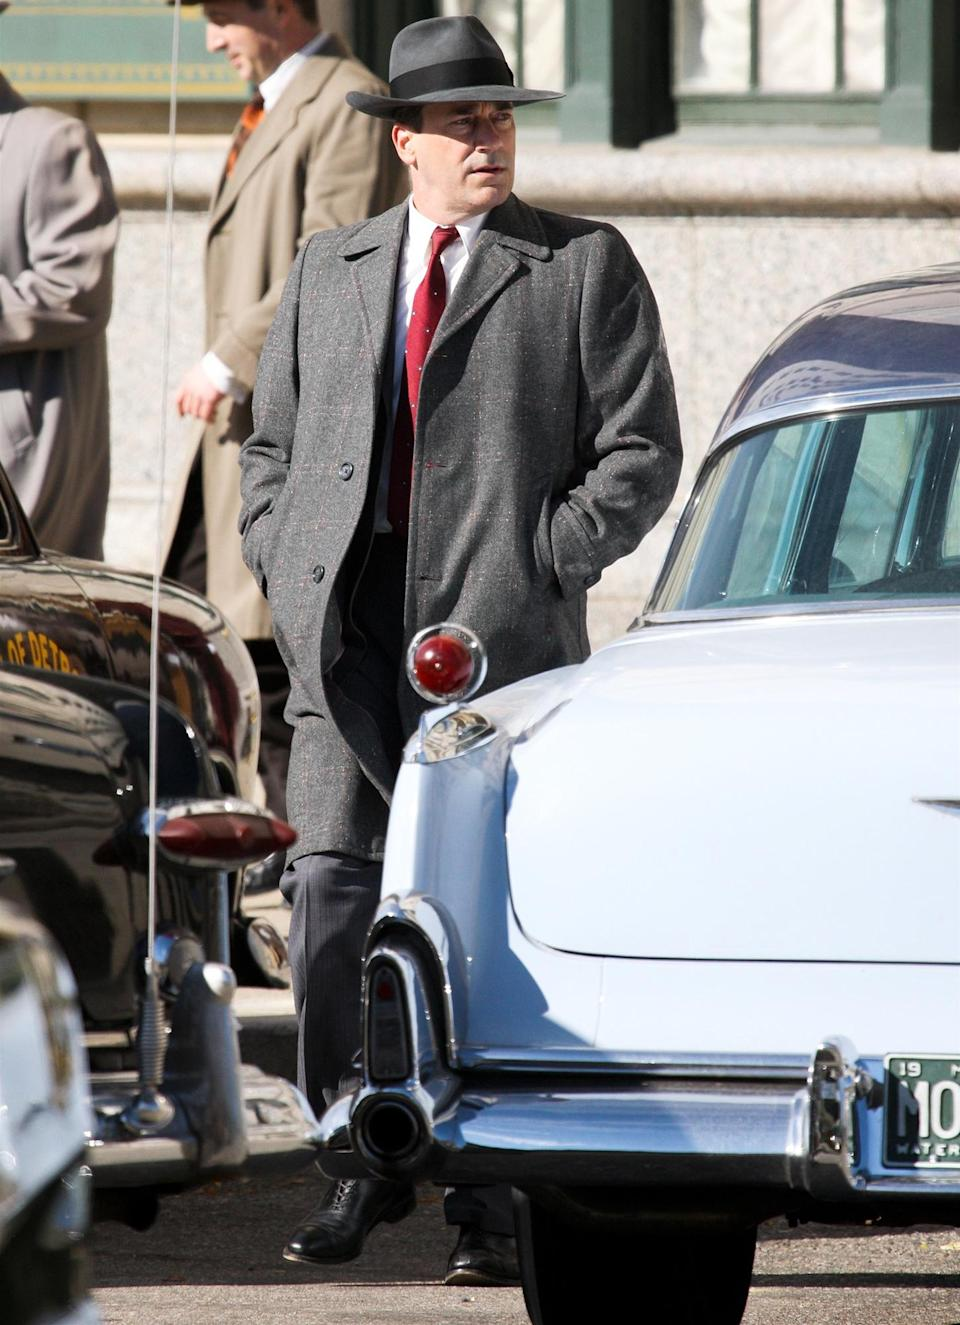 <p>Jon Hamm is seen in full character filming <em>No Sudden Move</em> in Detroit, Michigan on Monday.</p>